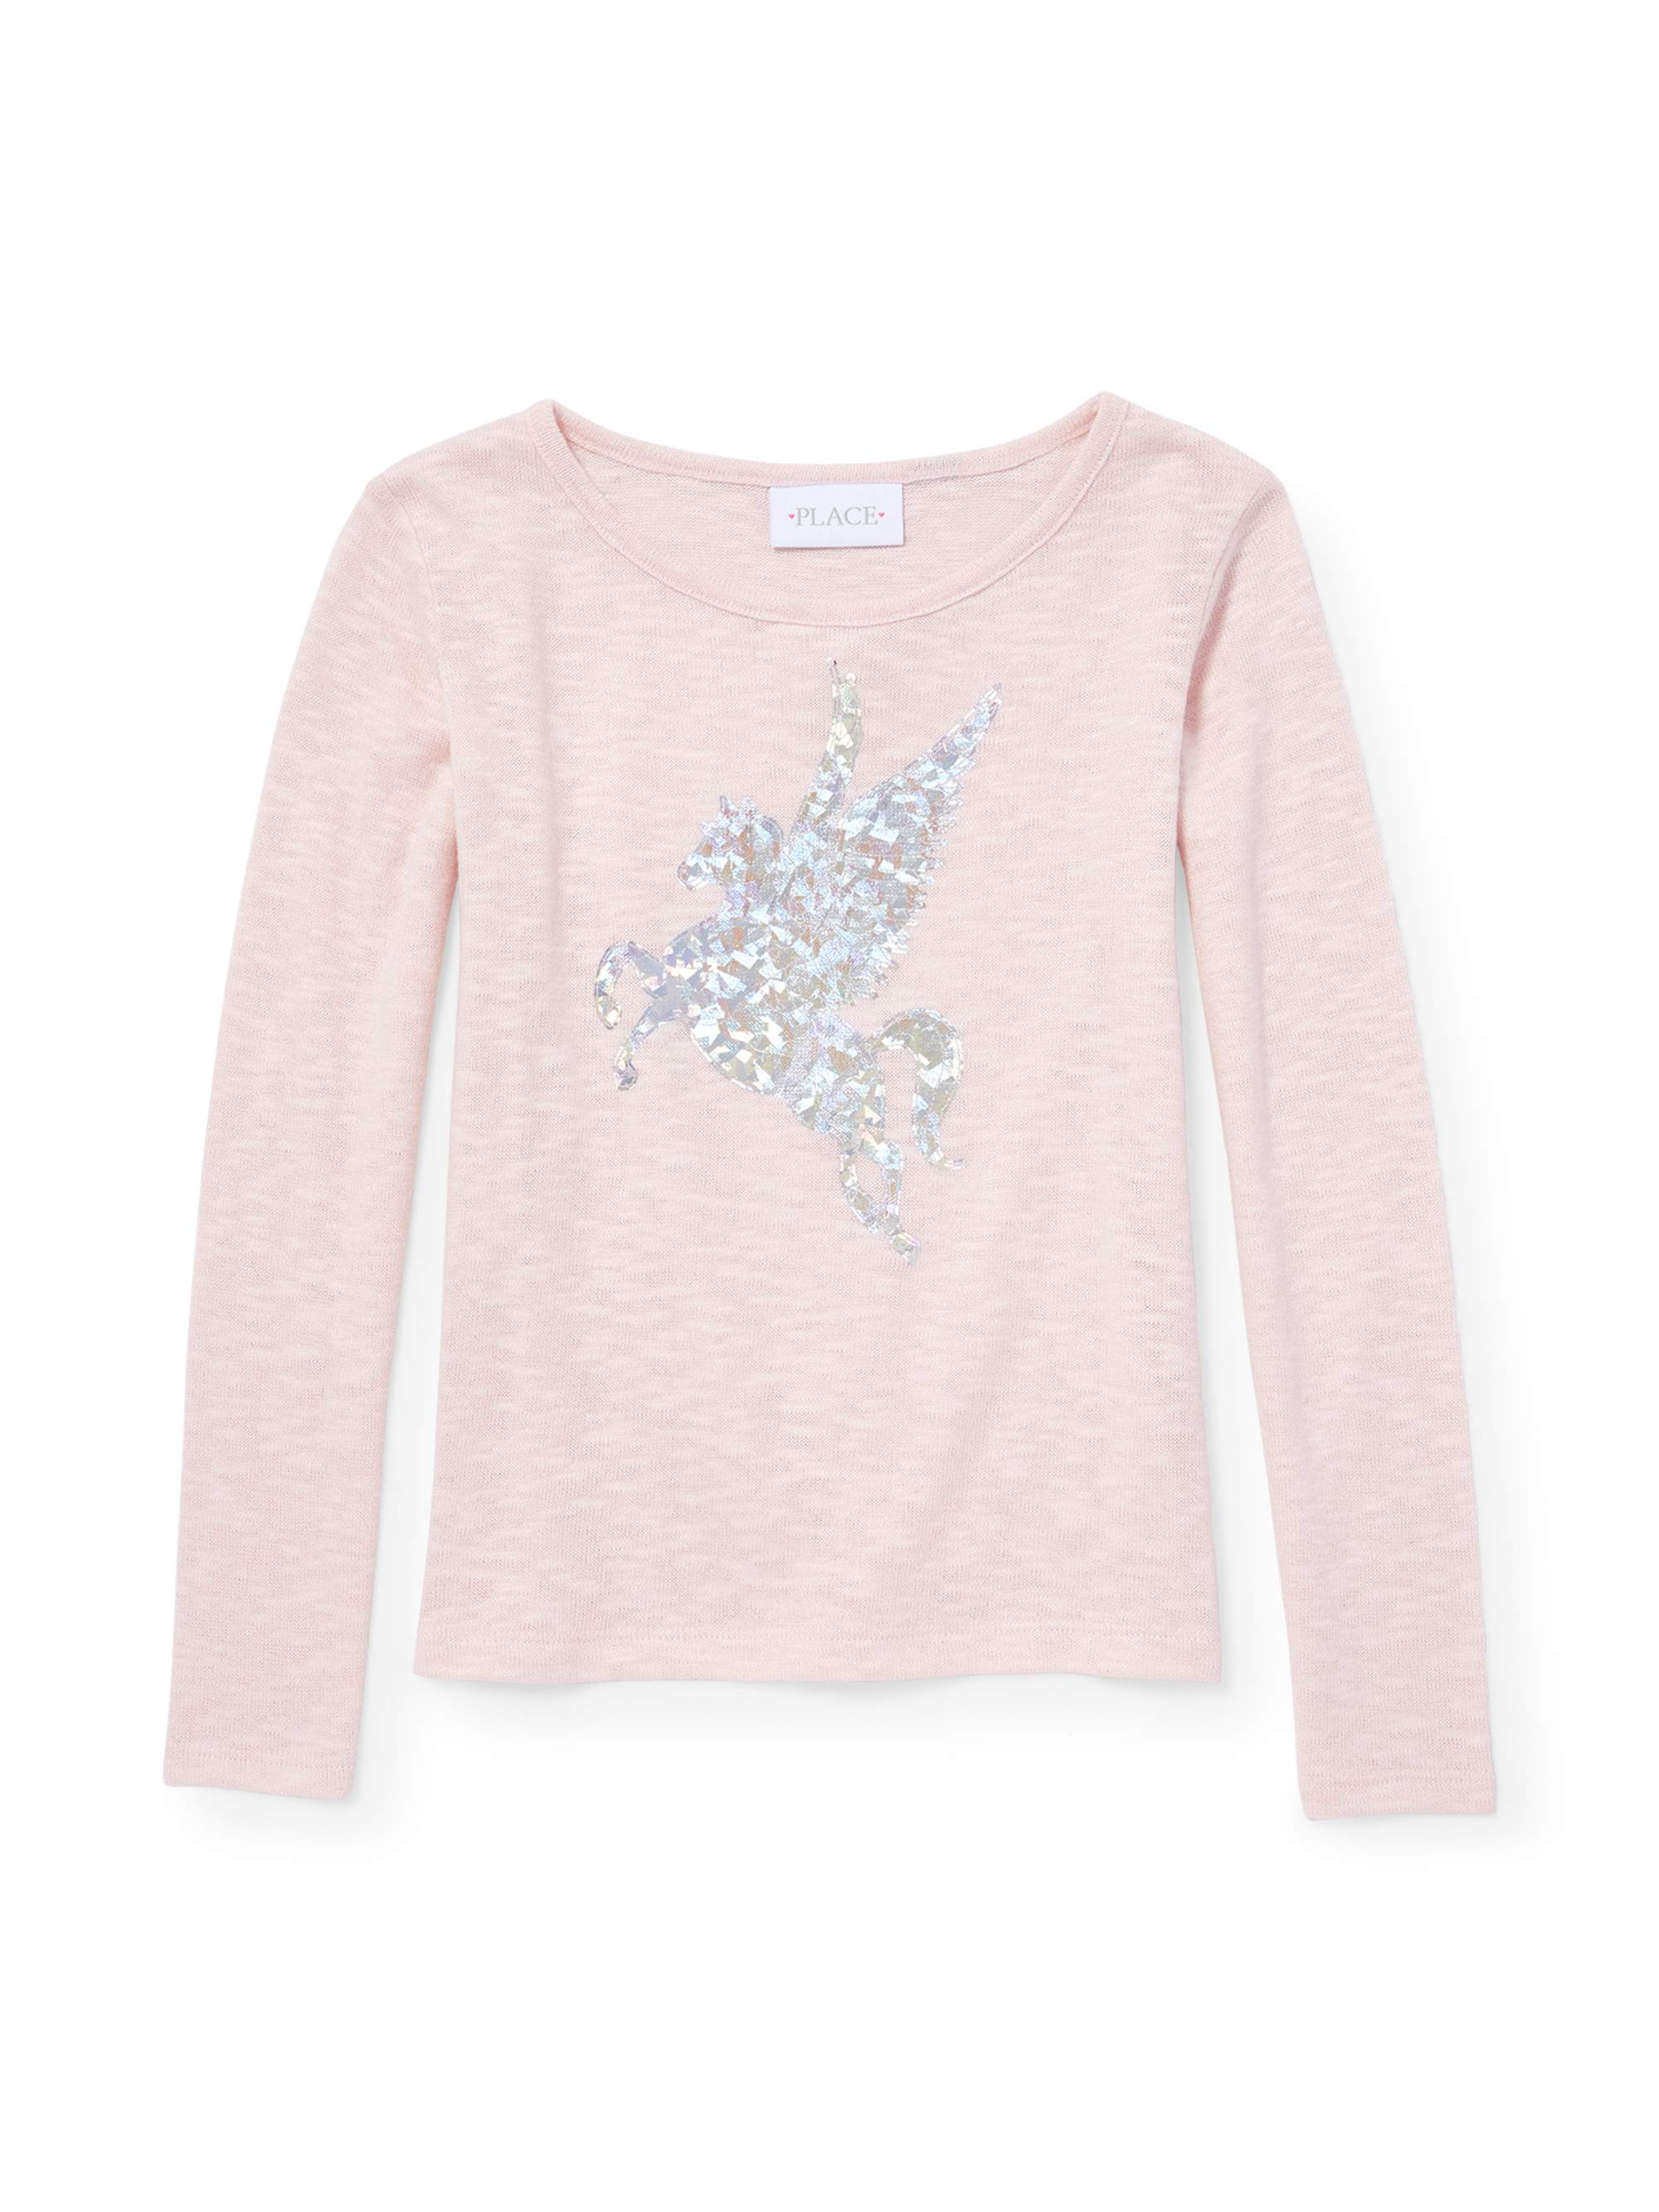 Foil Graphic Sweater Knit Long Sleeve Top (Little Girls & Big Girls)